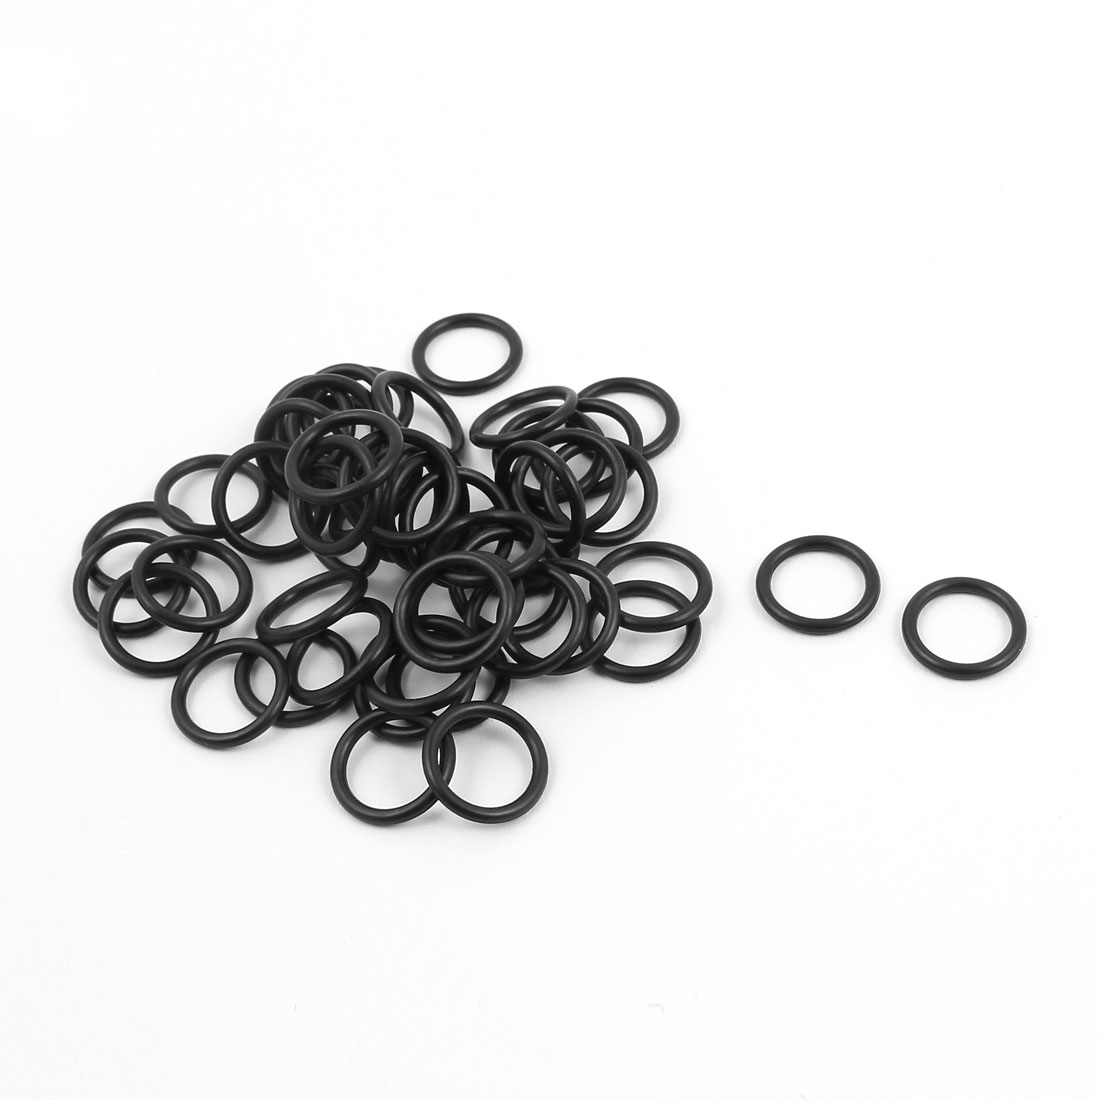 50Pcs Black 12.5mm x 1.5mm Nitrile Rubber O Ring NBR Oil Resistant Sealing Grommets